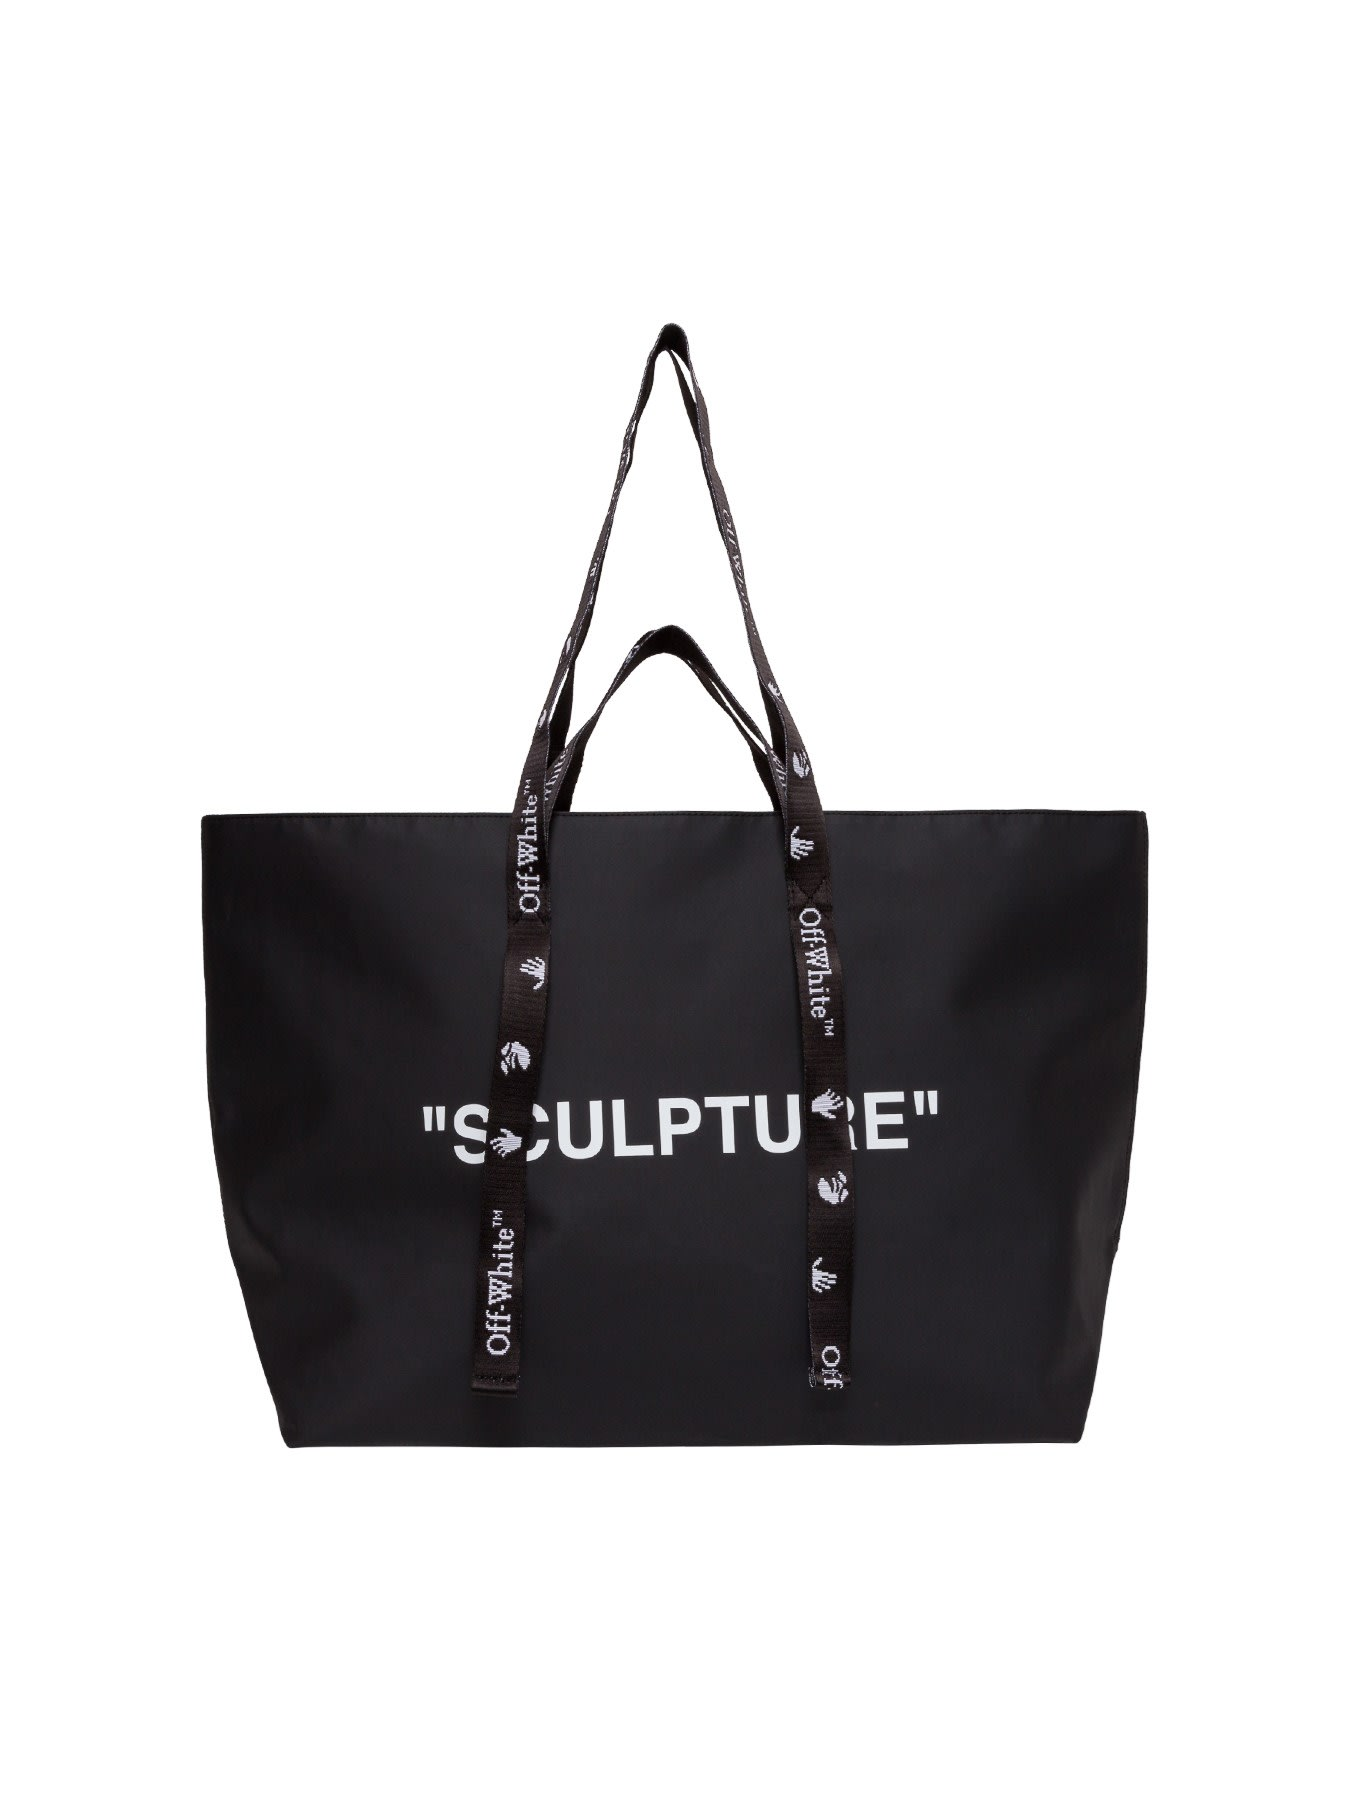 Off-White Totes COMMERCIAL TOTE